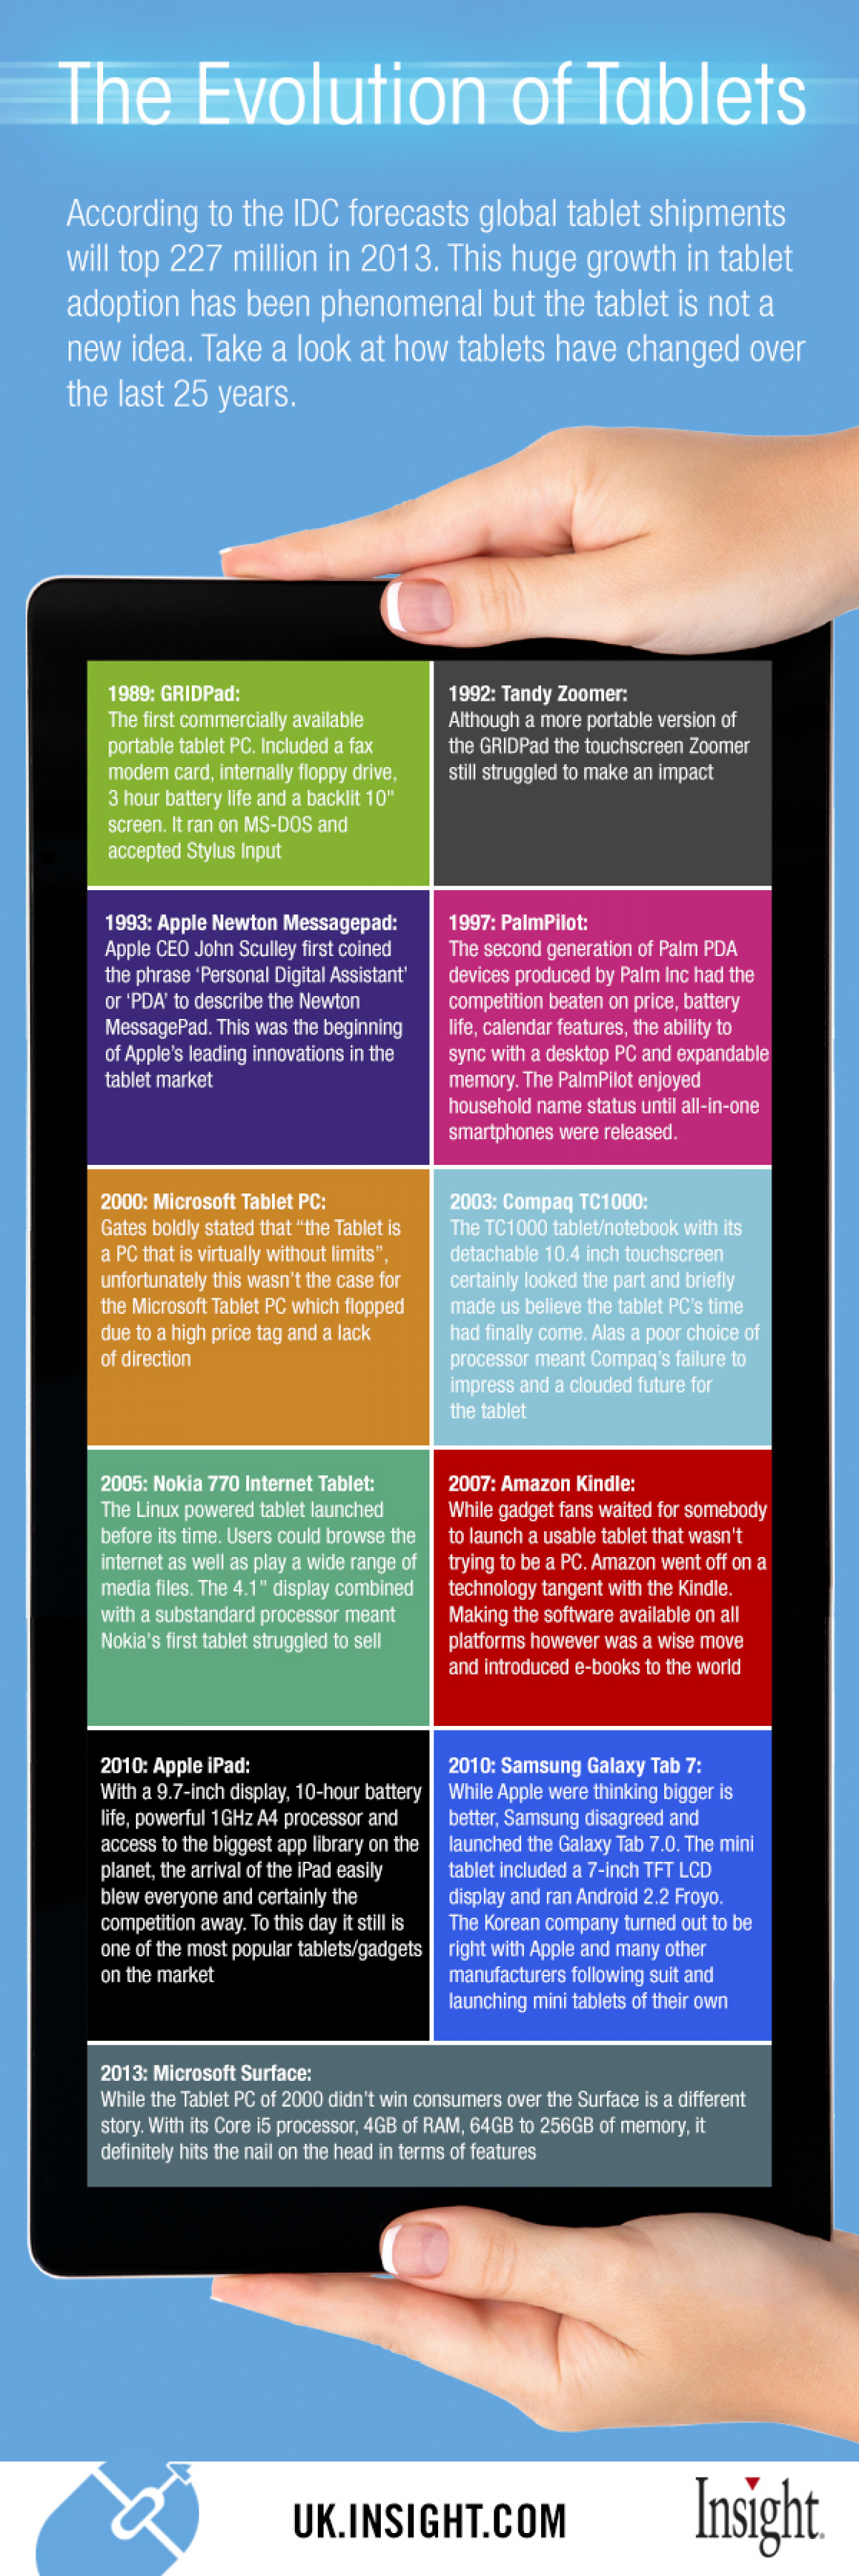 The evolution of tablets Infographic